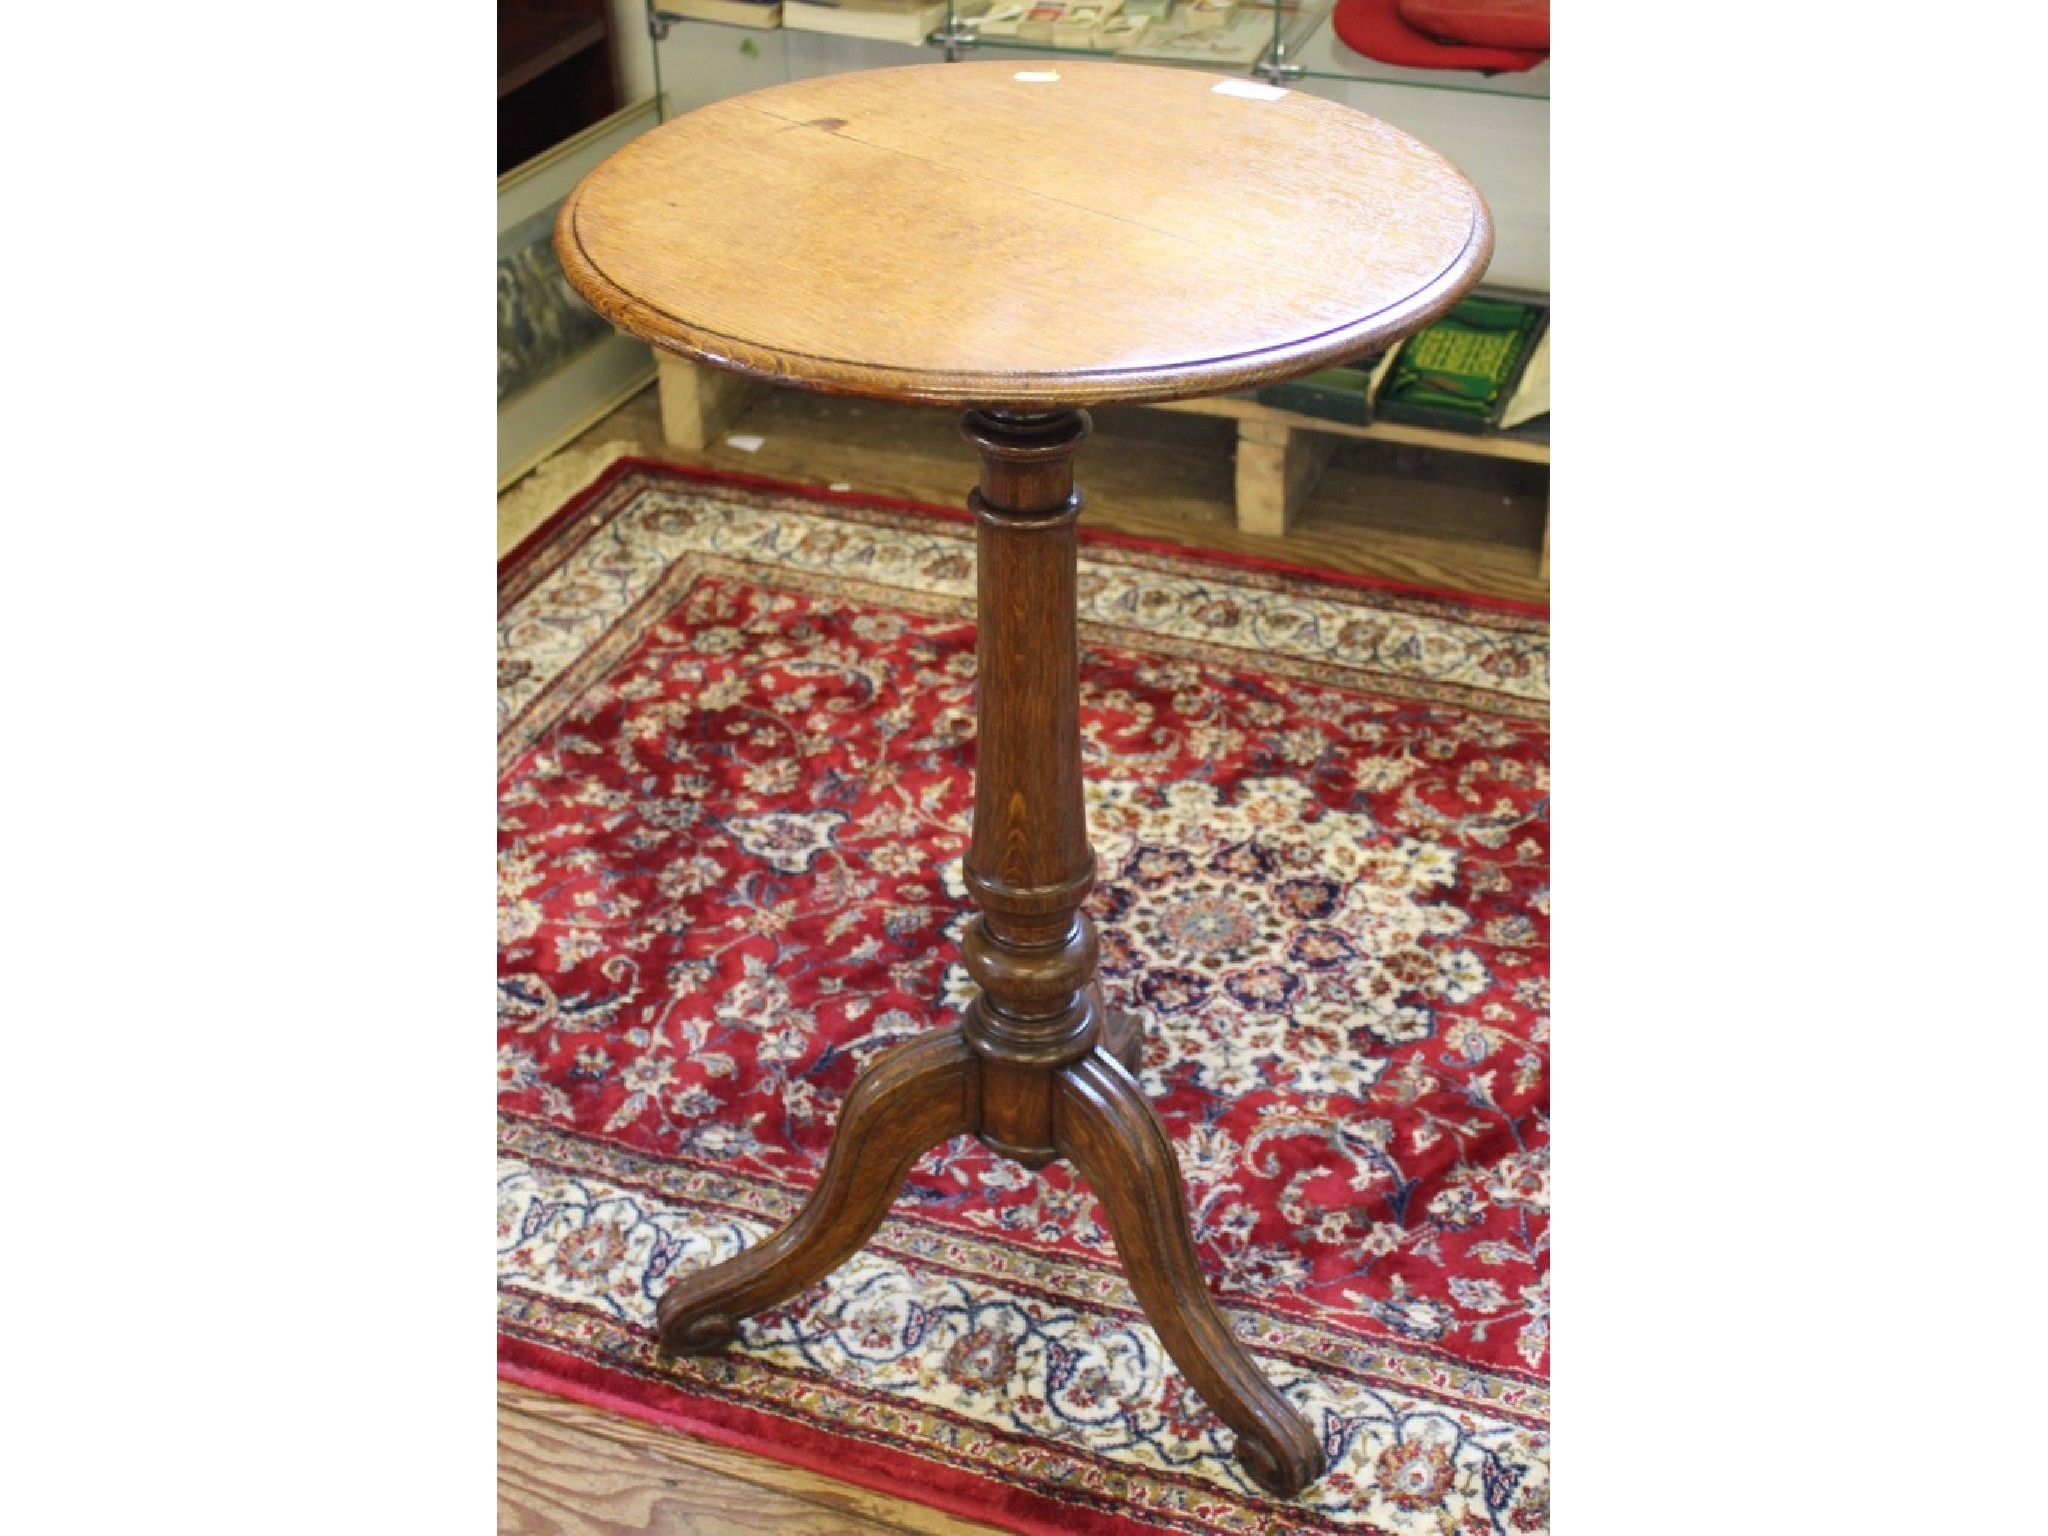 An oak tripod table, with circular top, turned stem and moulded legs